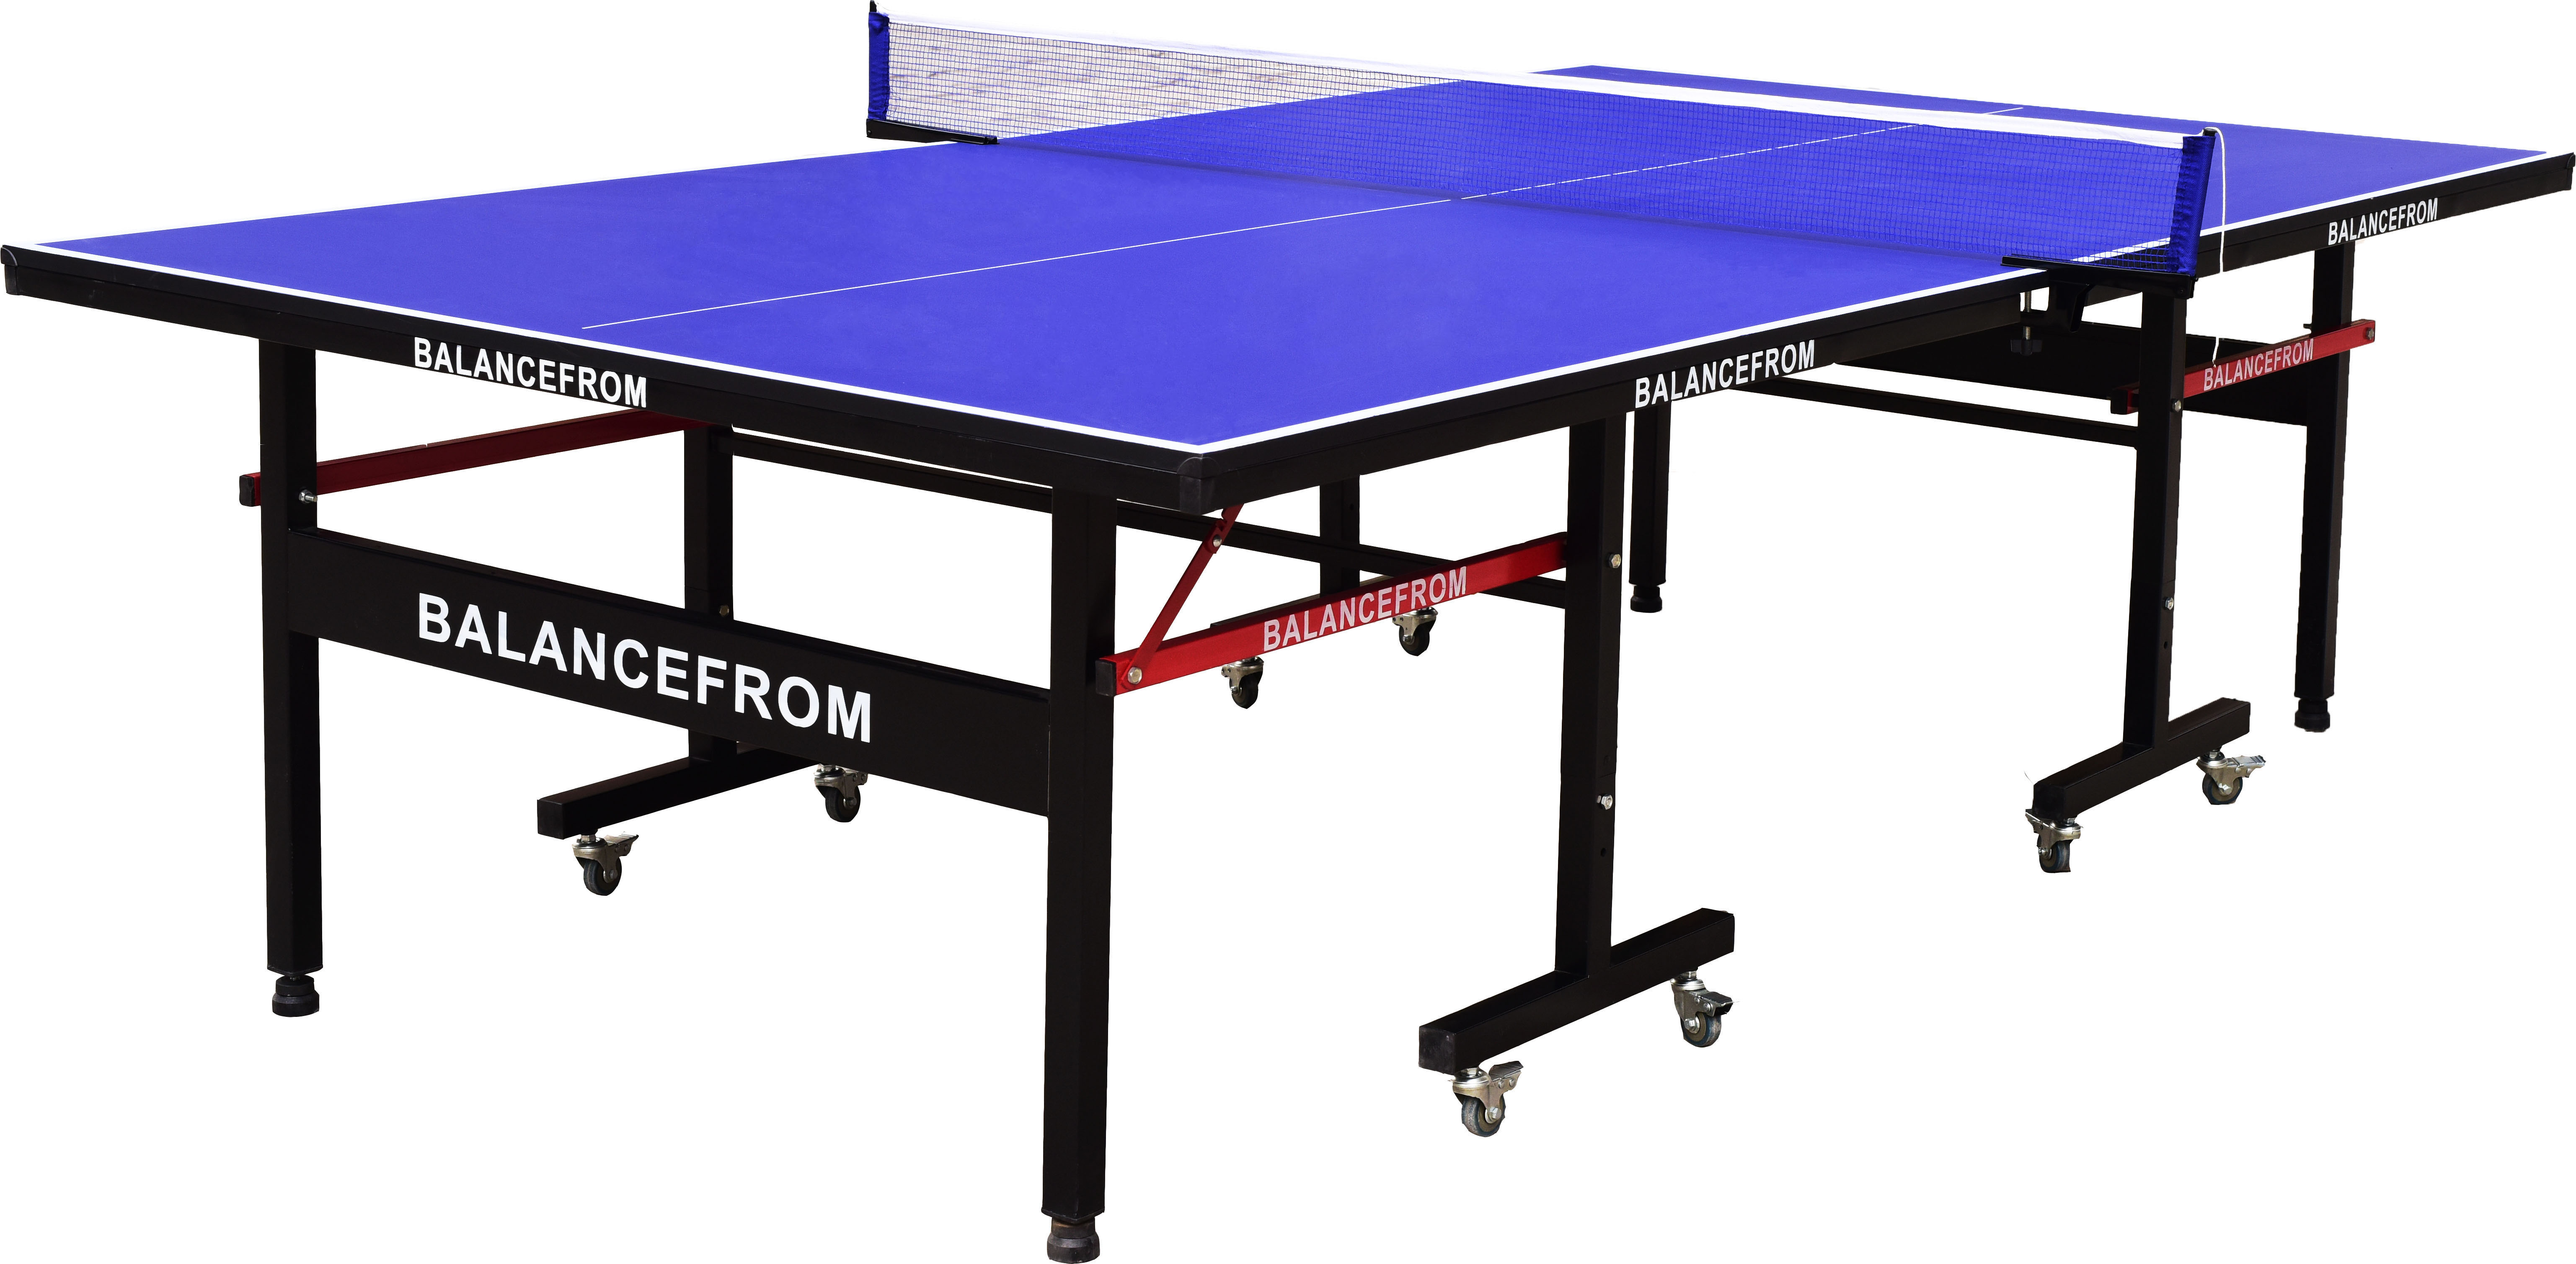 BalanceFrom Gopingpong 18mm Wood Surface Inside Ping Pong Table with Net Set by BalanceFrom